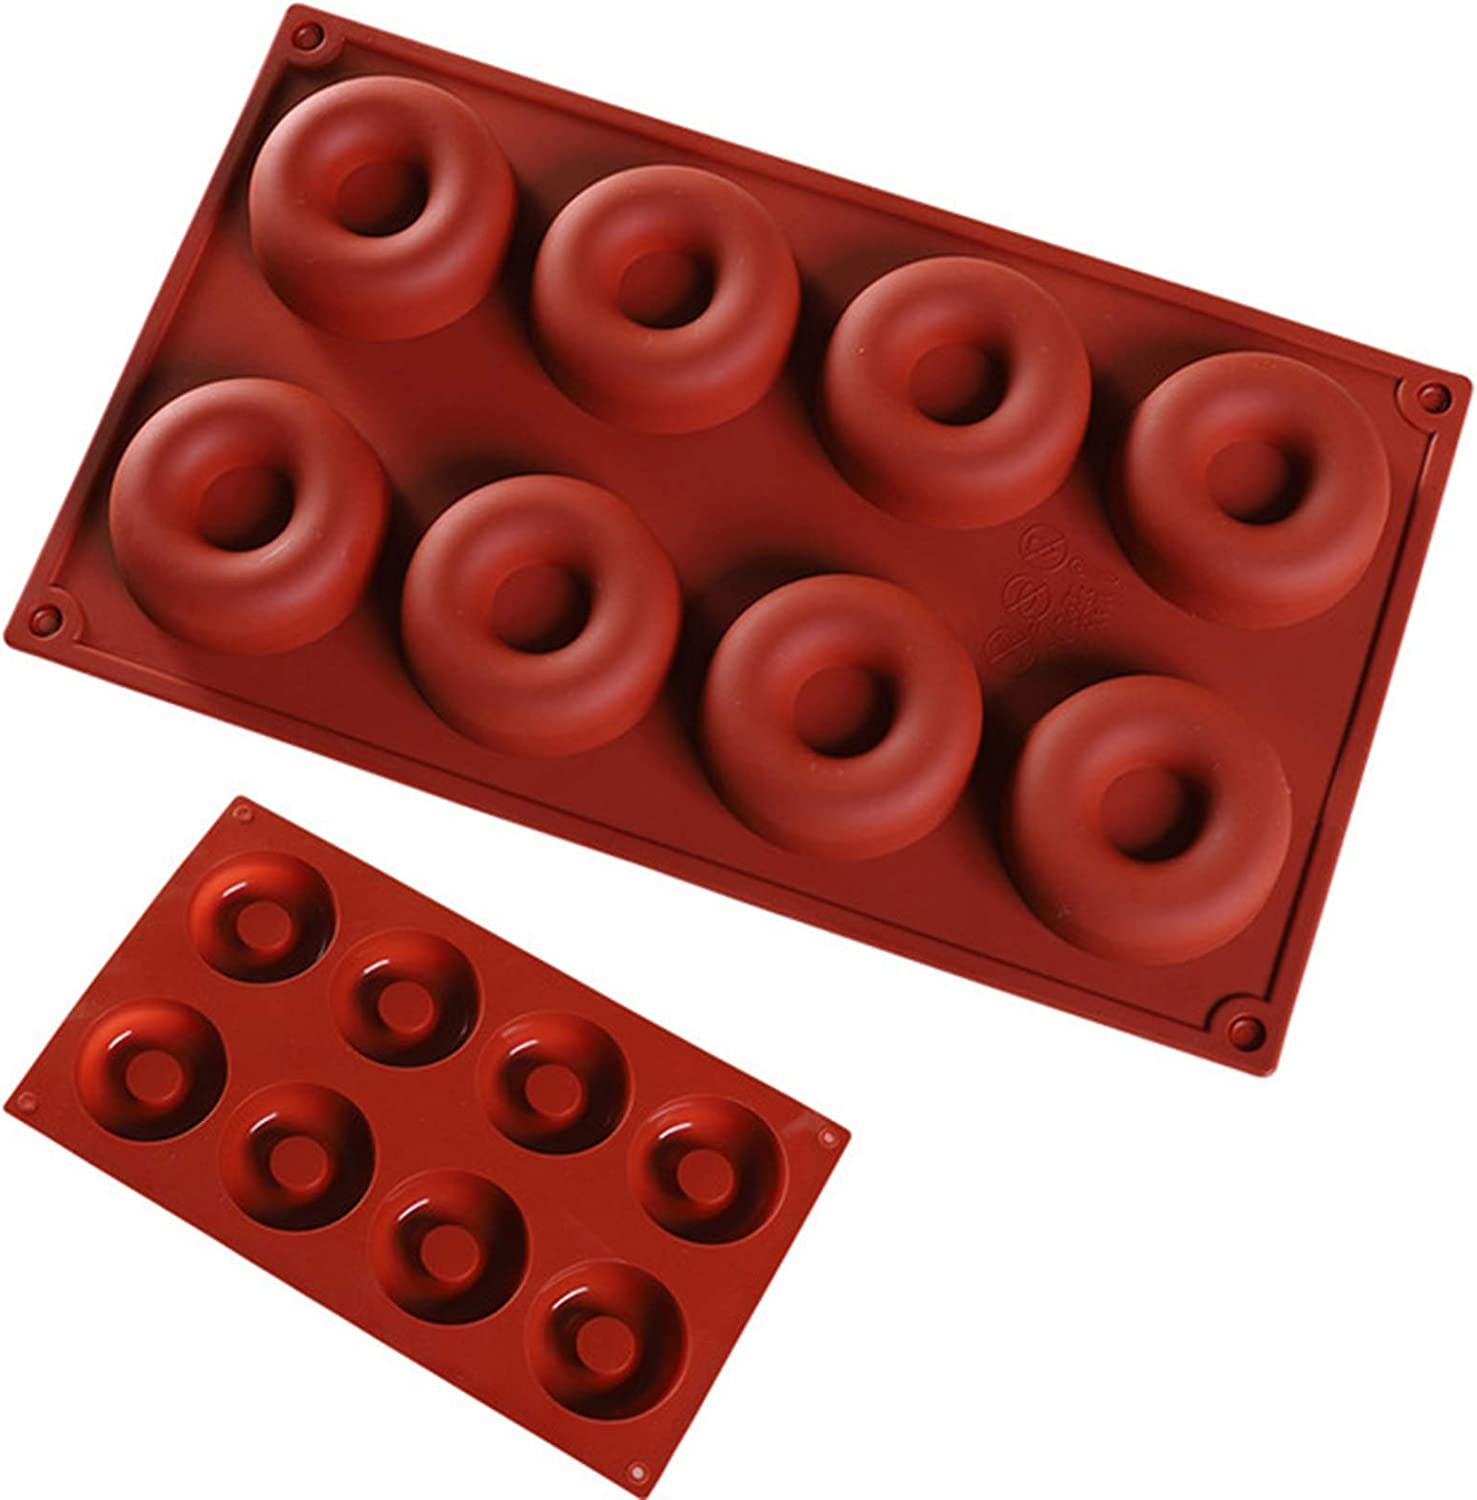 2 Pack Silicone Baking Large-scale sale Factory outlet Tray Mould Maker Donut Doughnut